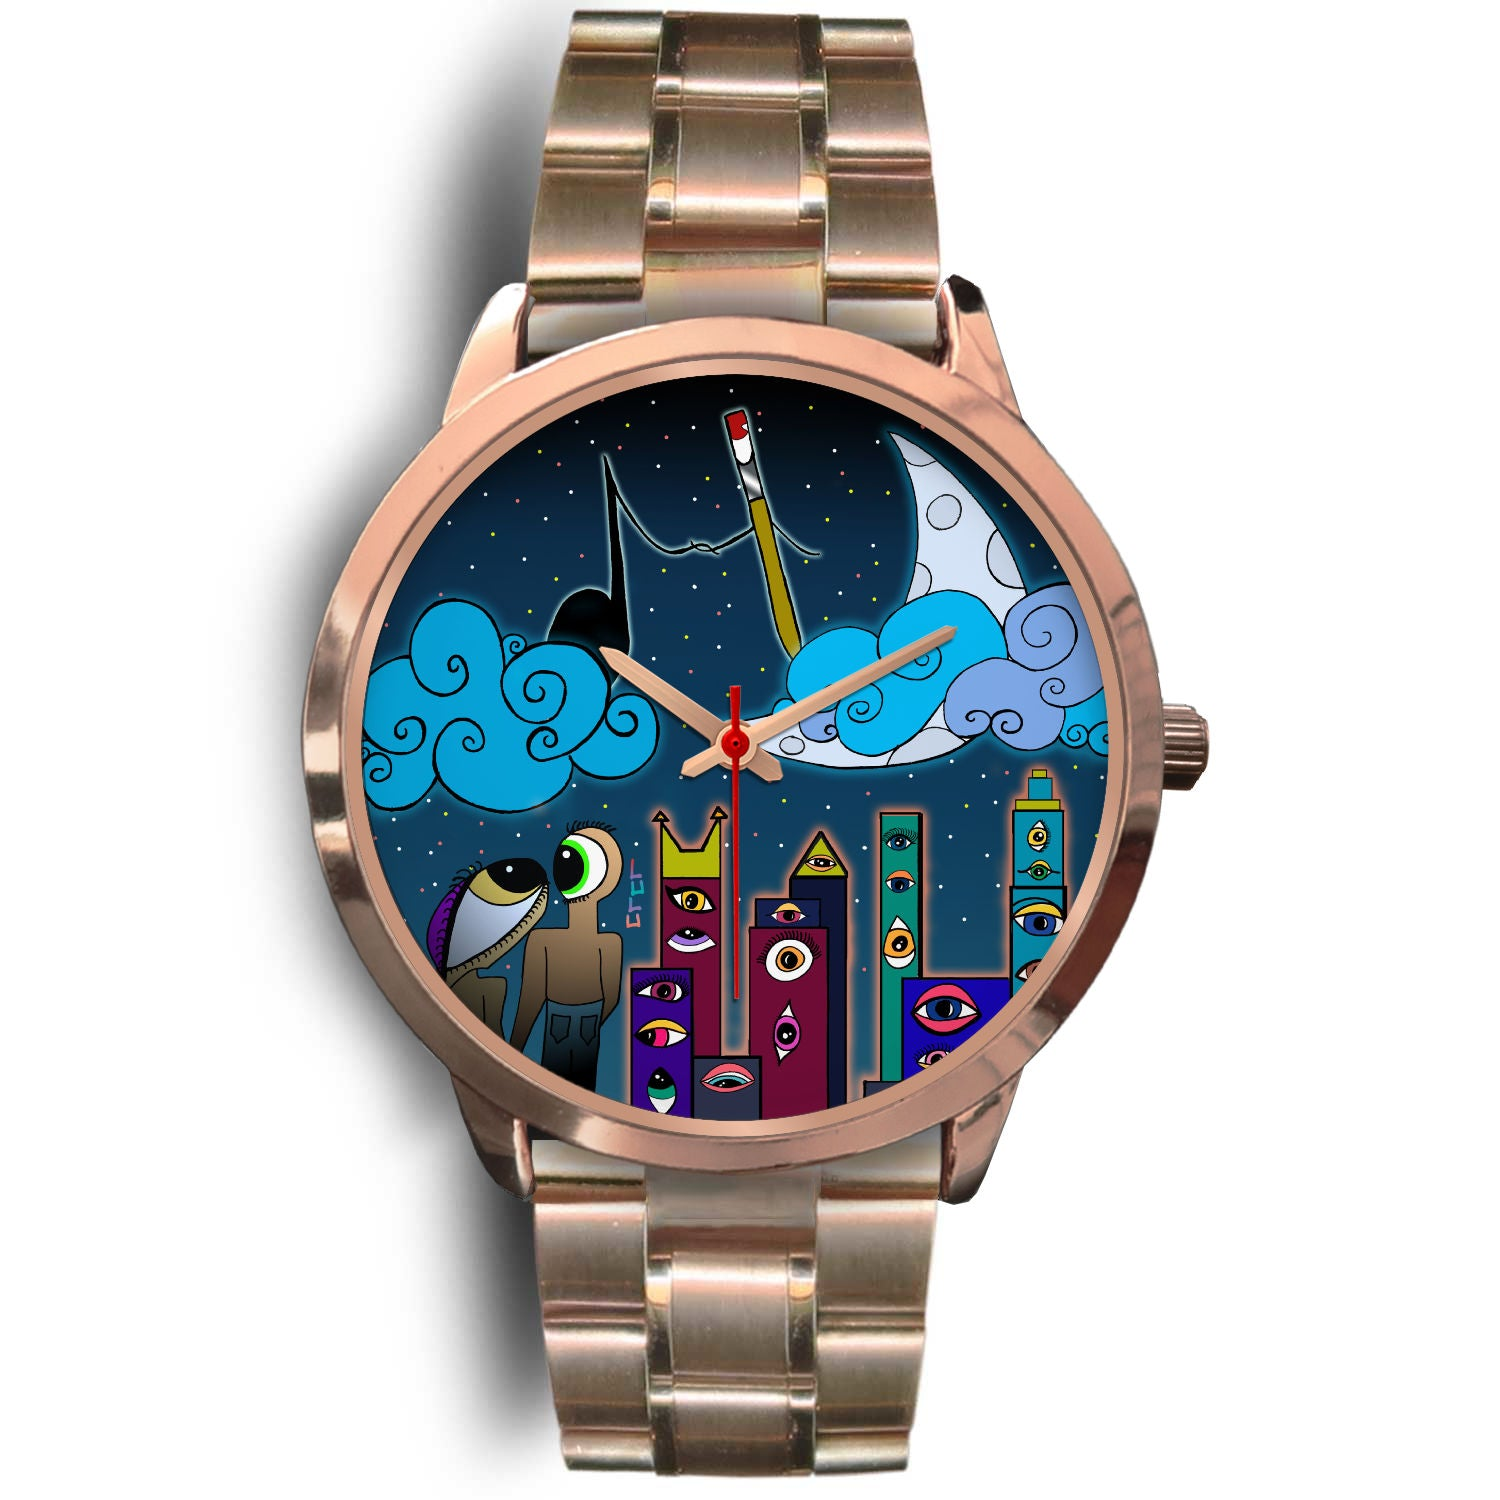 EYE LUV ART AND YEW ROSE GOLD WATCH